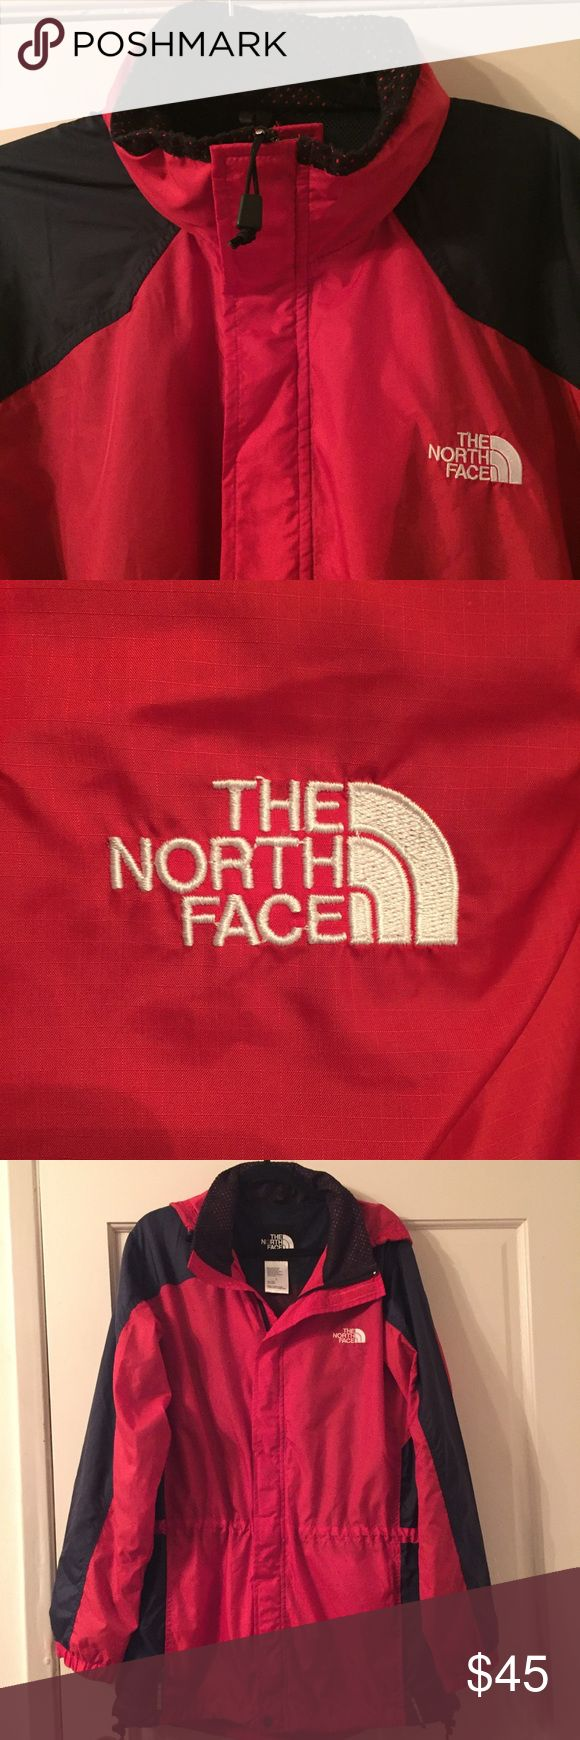 "MEN'S Northface jacket Men's ""Northface"" red & black jacket in great condition! It has black lining and a stow pocket inside and easy access hidden hood for rain. Excellent for that special man in your life. North Face Jackets & Coats Windbreakers"